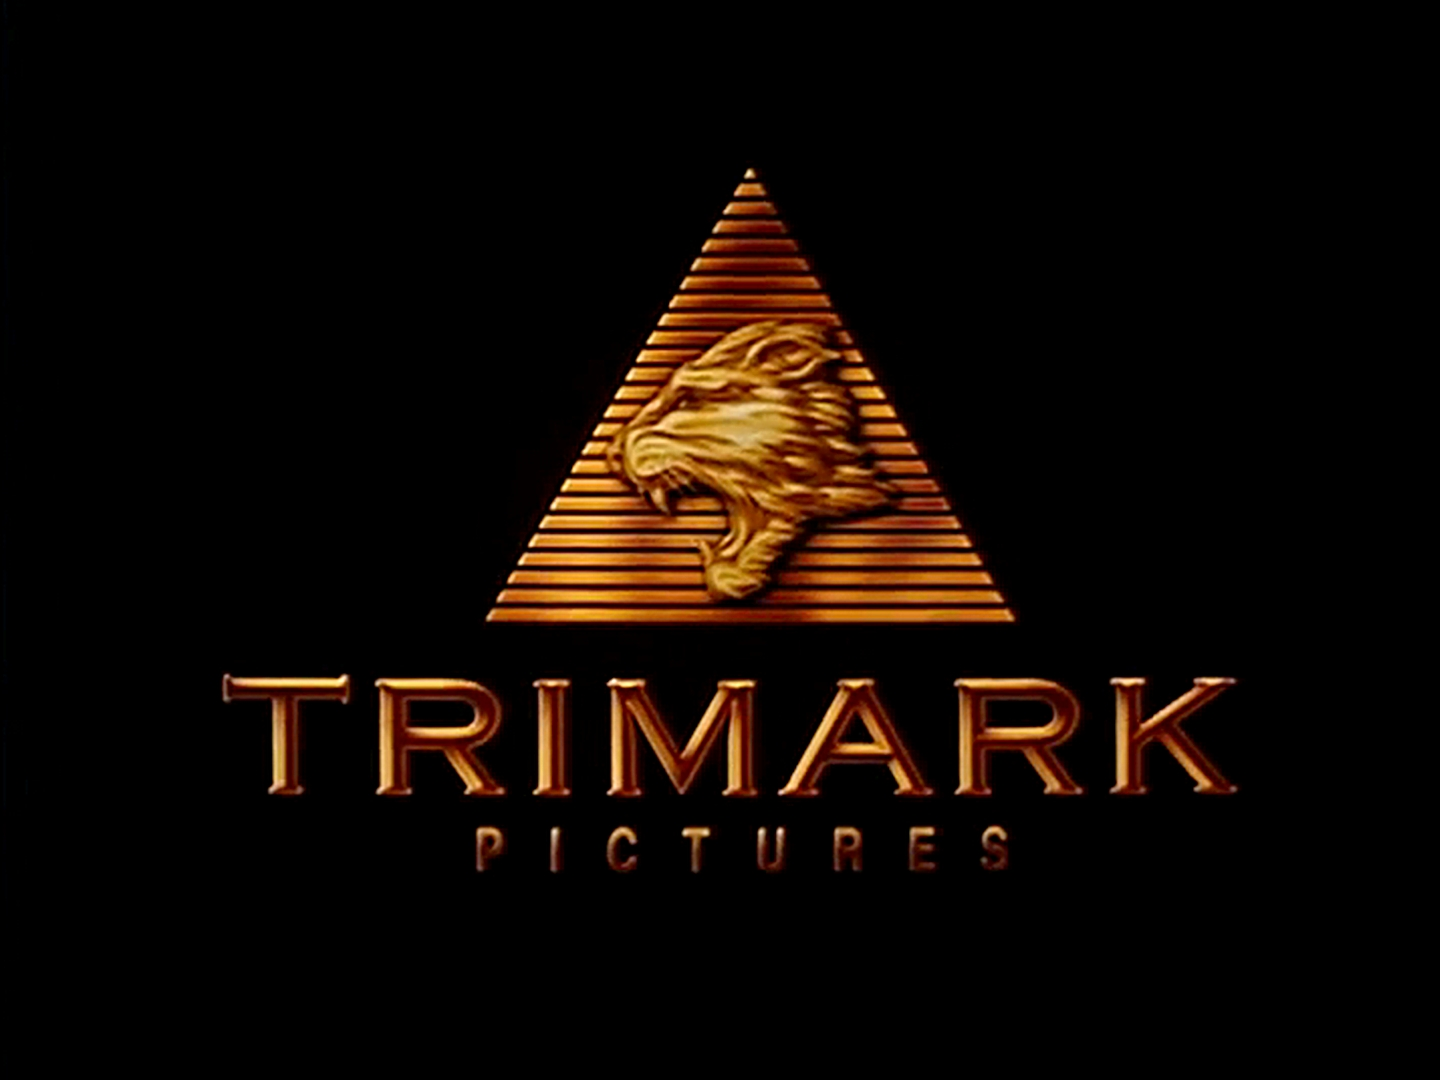 Trimark Pictures (1993) - A